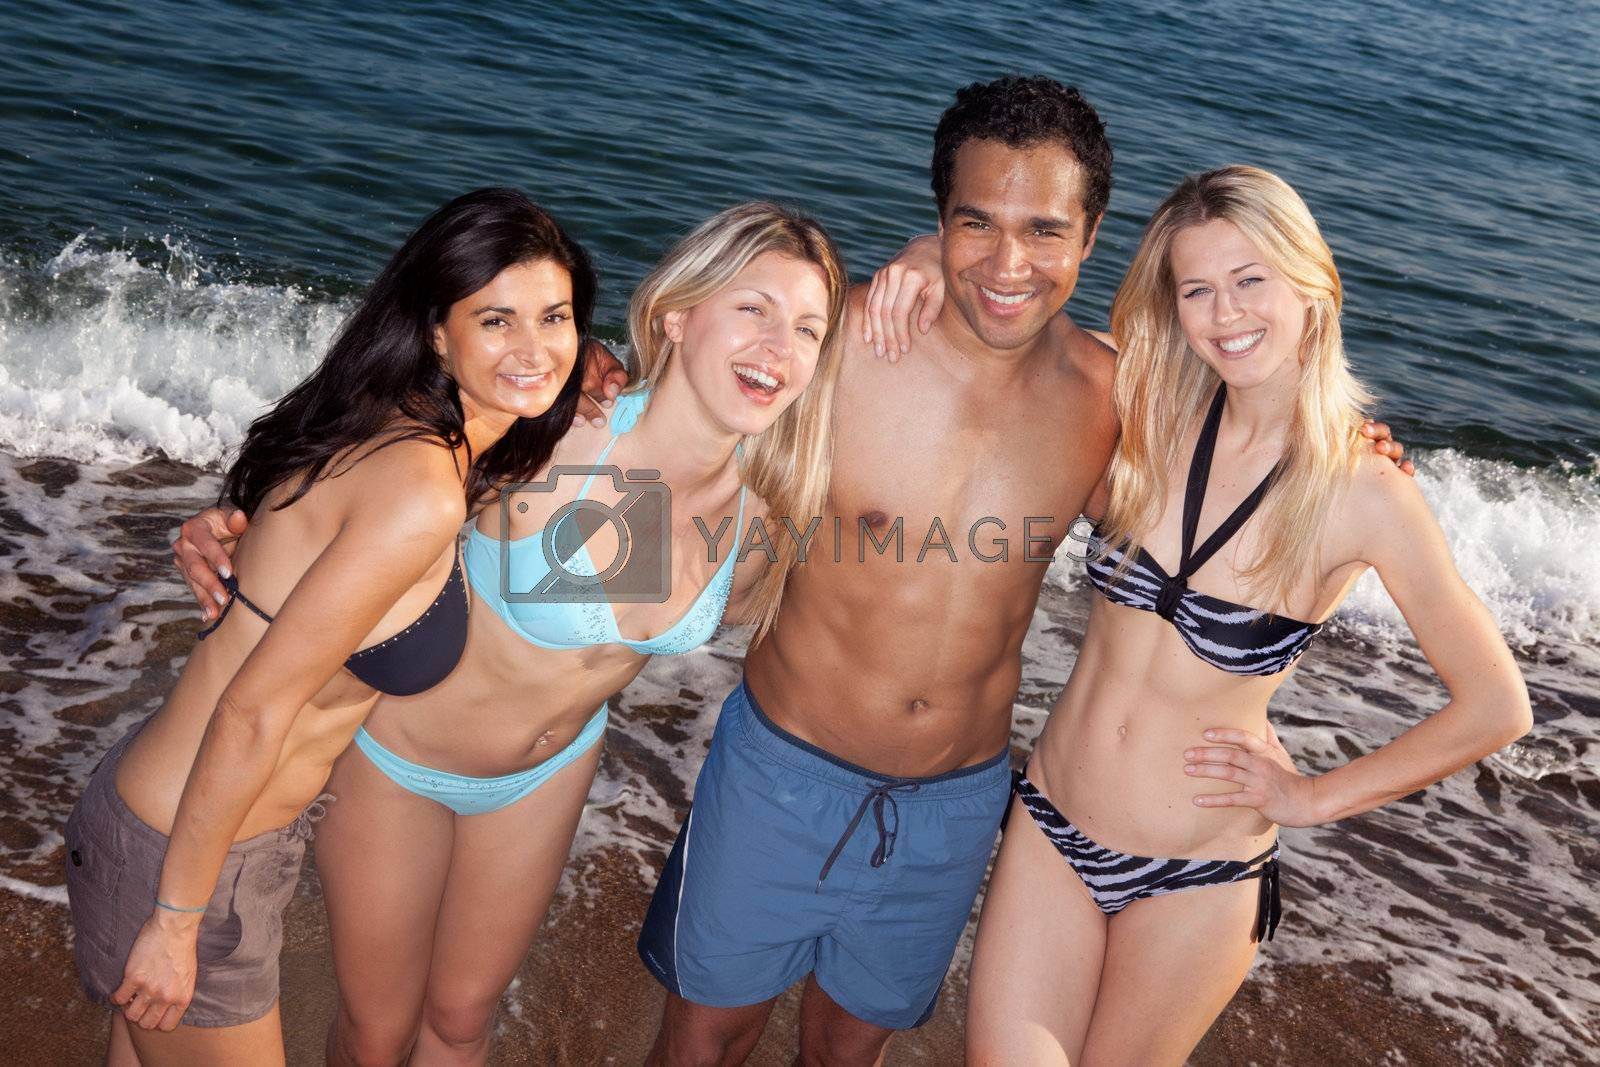 A group of friends smiling having fun at the beach